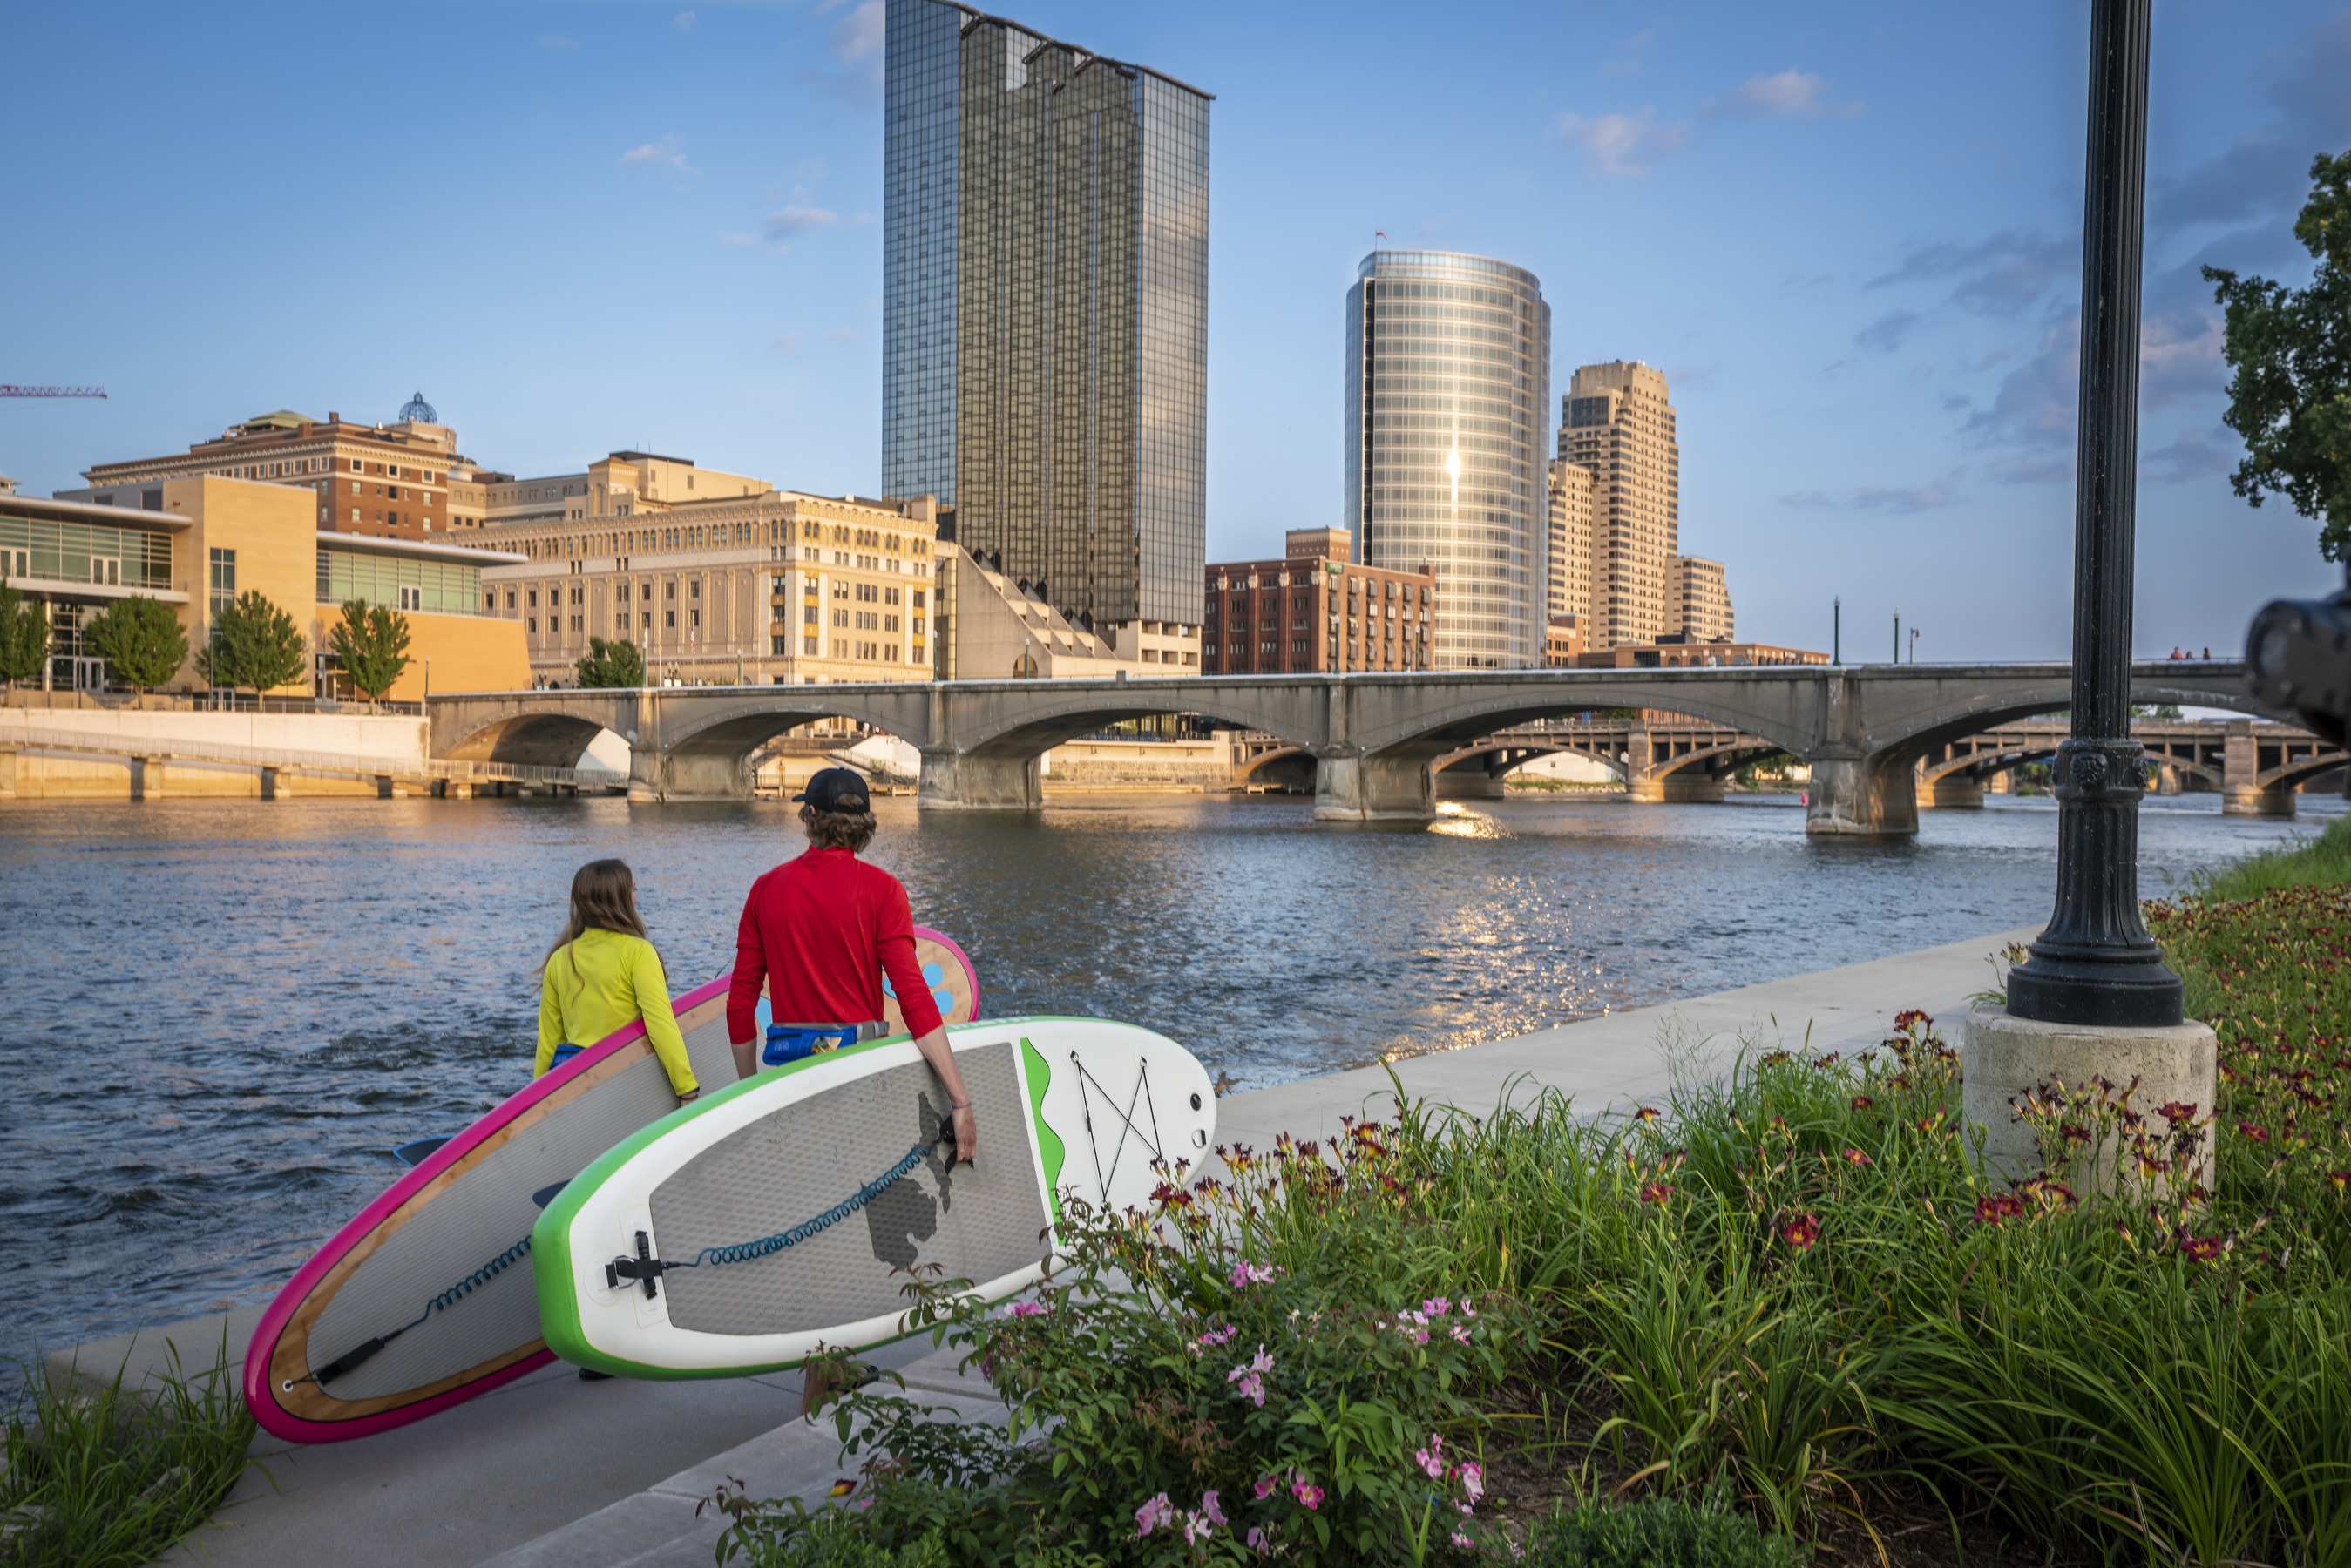 Recreation in Grand Rapids